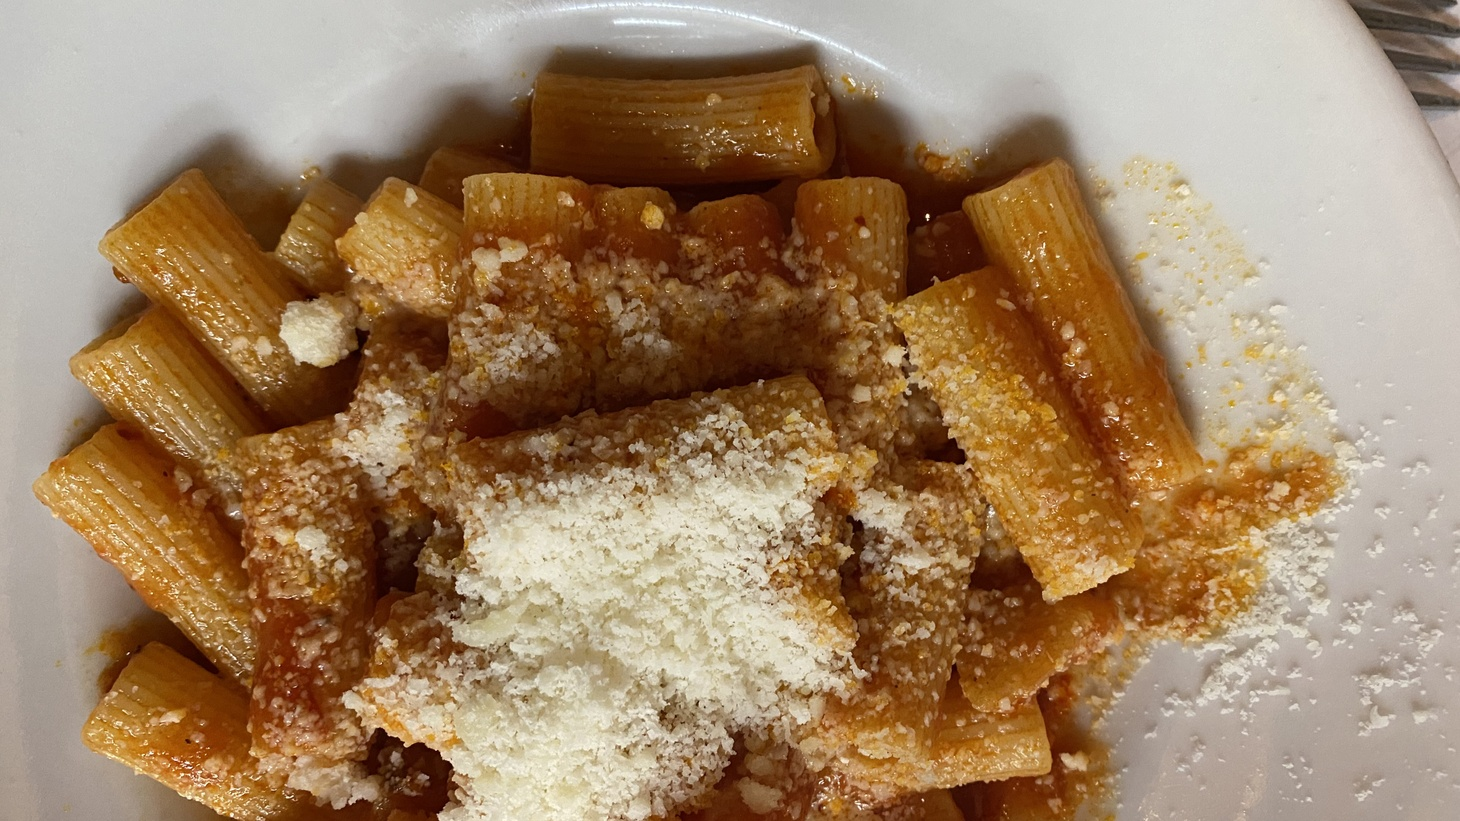 The trifecta of cheese, pasta, and amatriciana sauce provides comfort in the first weeks of the new year.